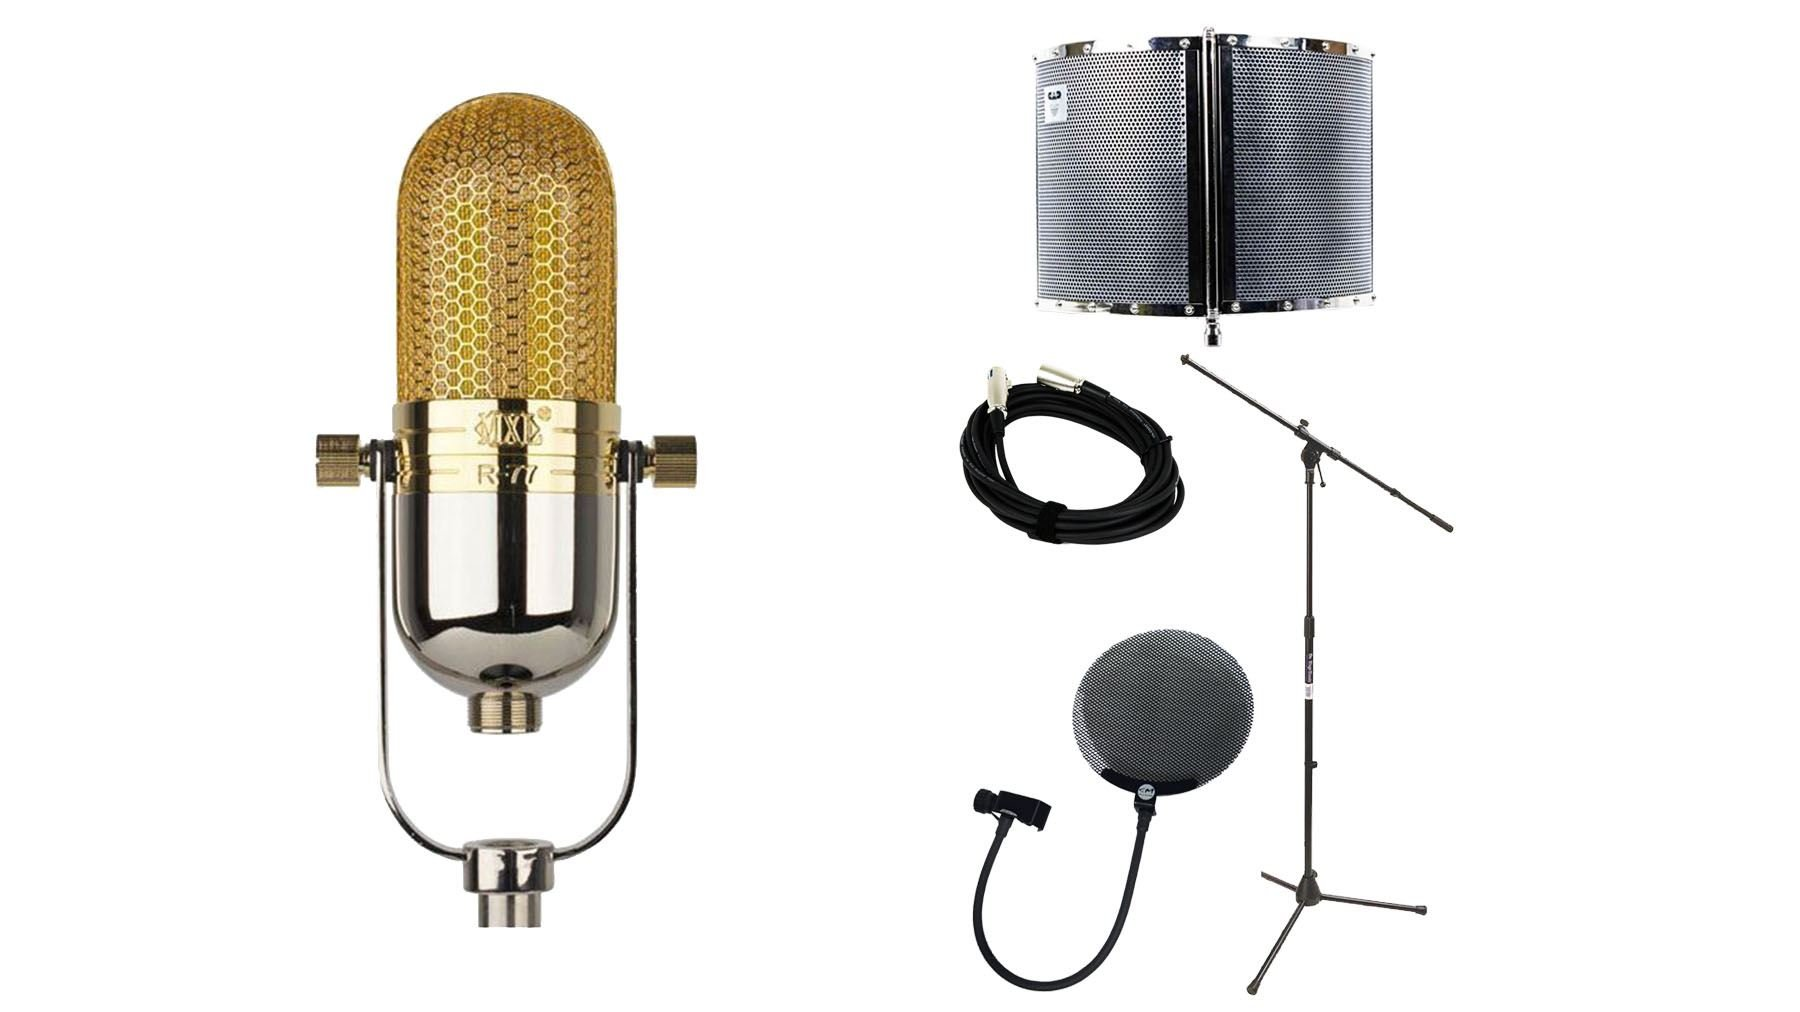 MXL R77 Microphone Bundle with 20-foot Cable & Pop Filter & Stand & CAD AS22 Acoustic Shield (5 Items)